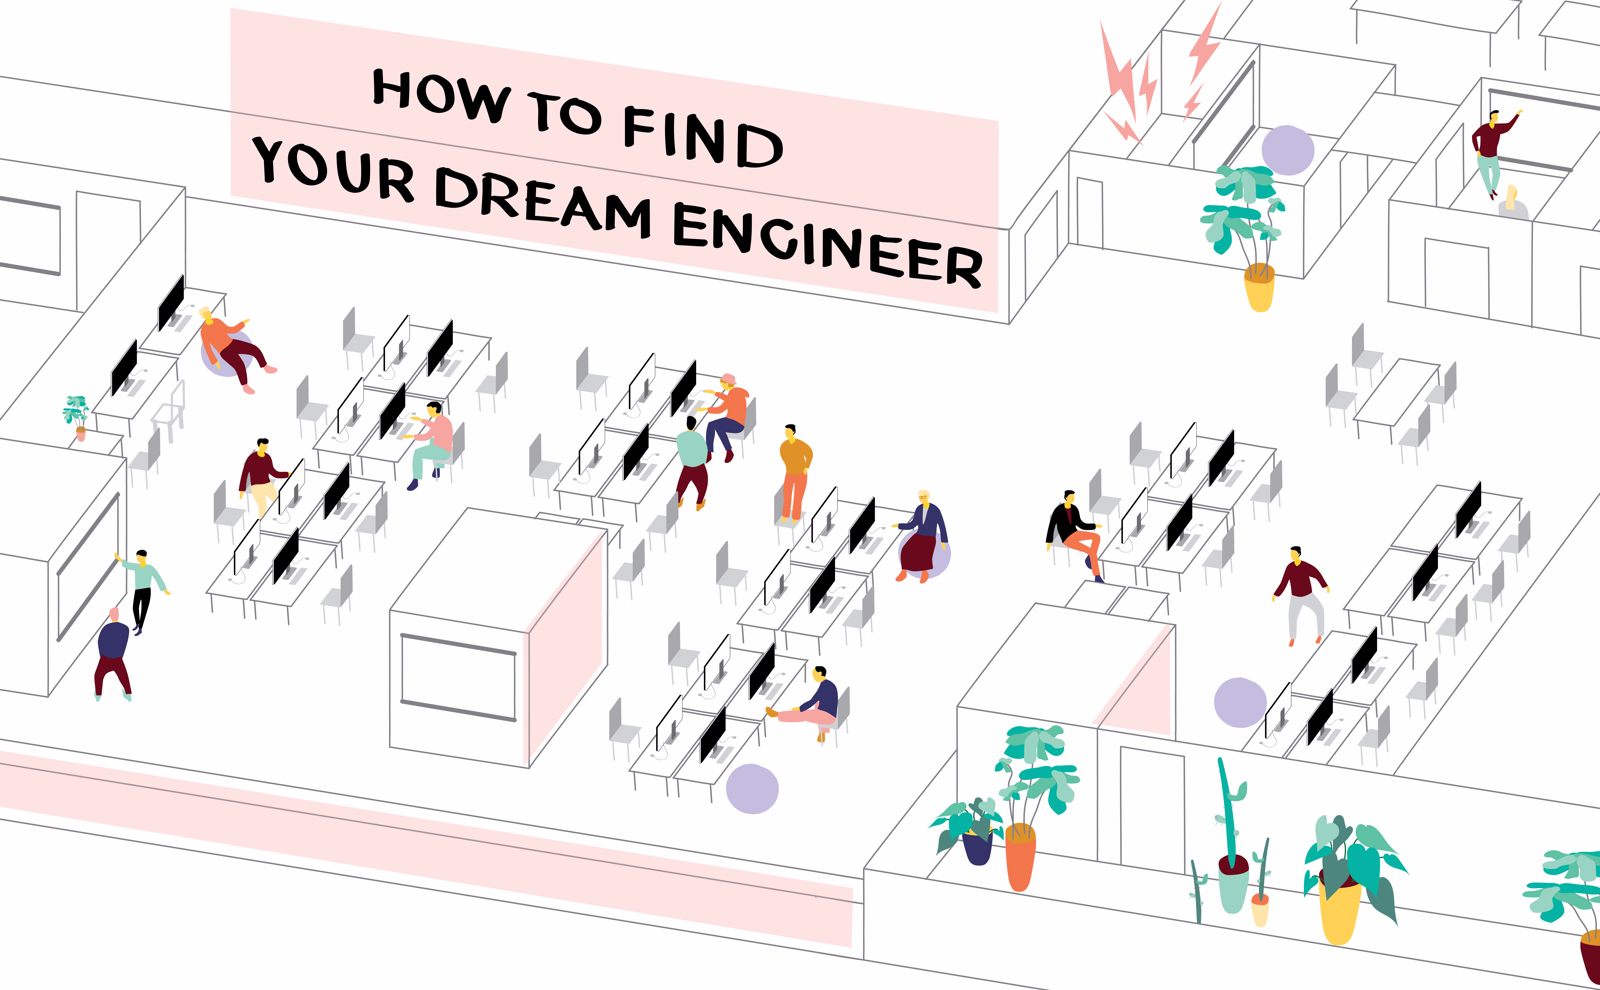 How to find your dream engineer